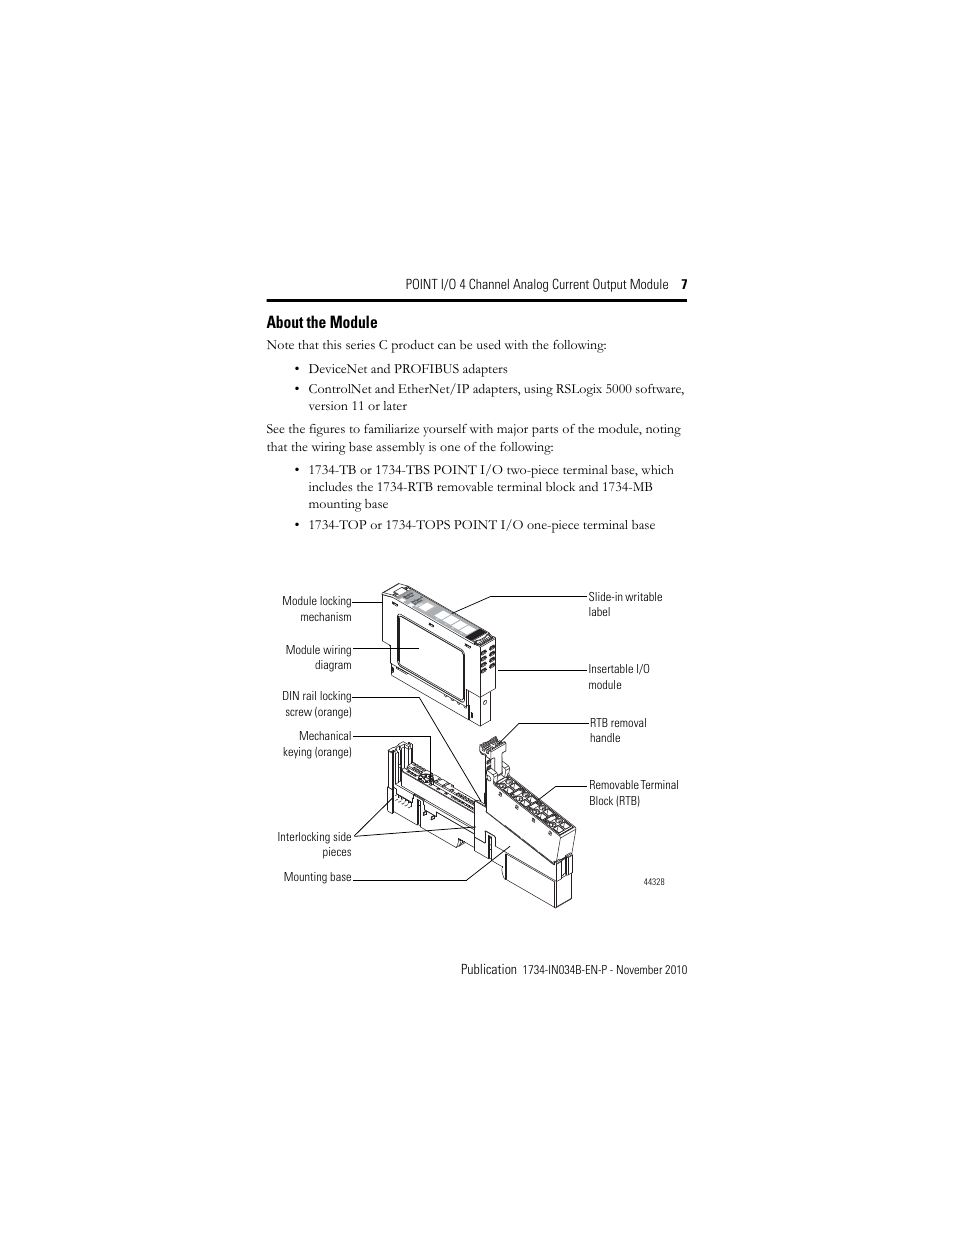 rockwell automation 1734 oe4c installation instructions page7 about the module rockwell automation 1734 oe4c installation 1734 oe4c wiring diagram at edmiracle.co